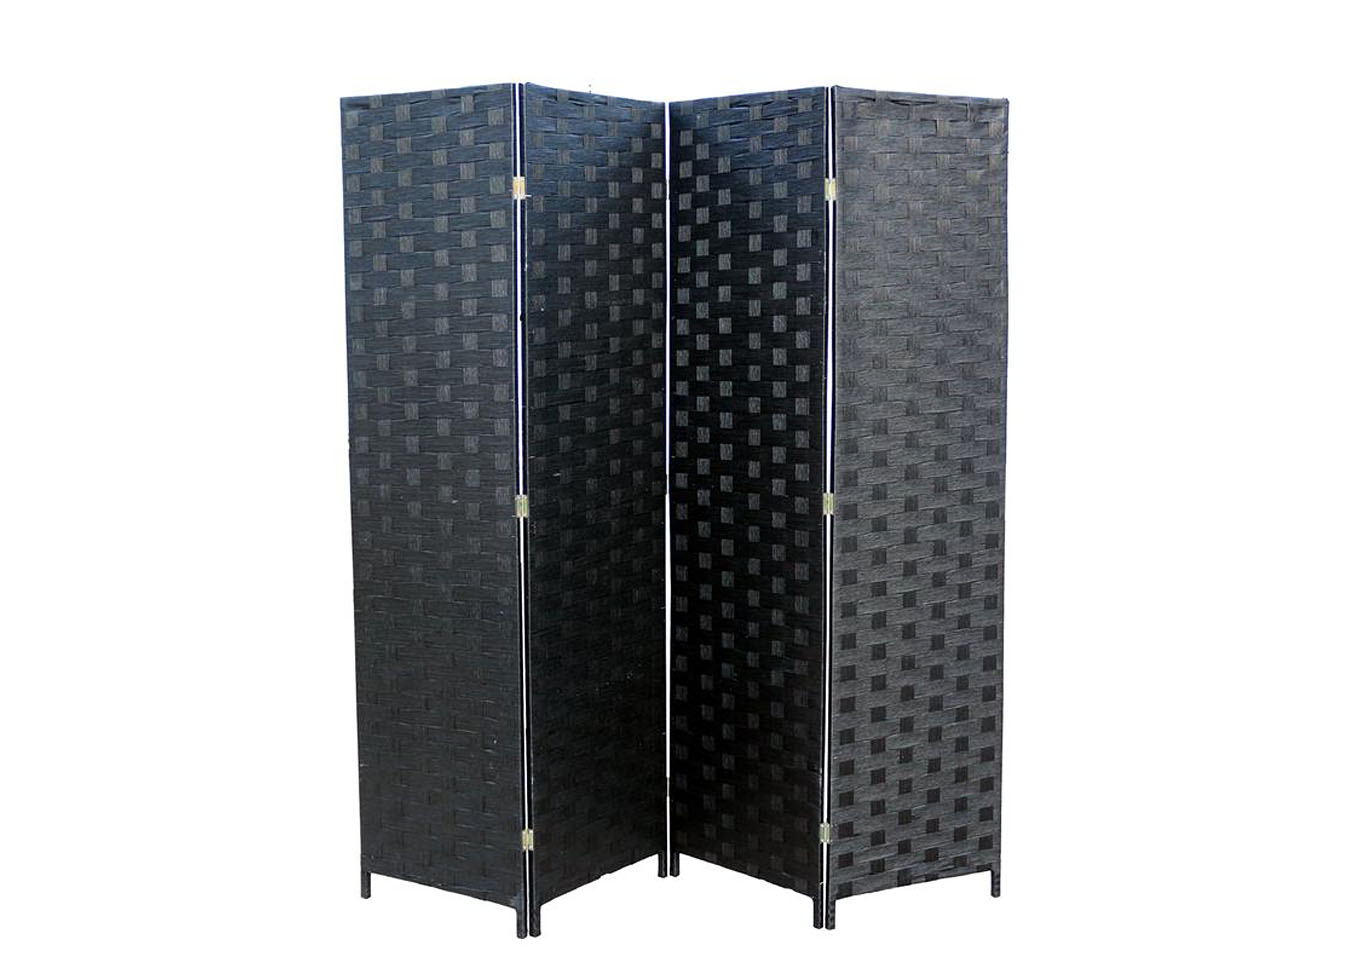 Oregon Black Wicker 4 Panel Room Divider,Instore